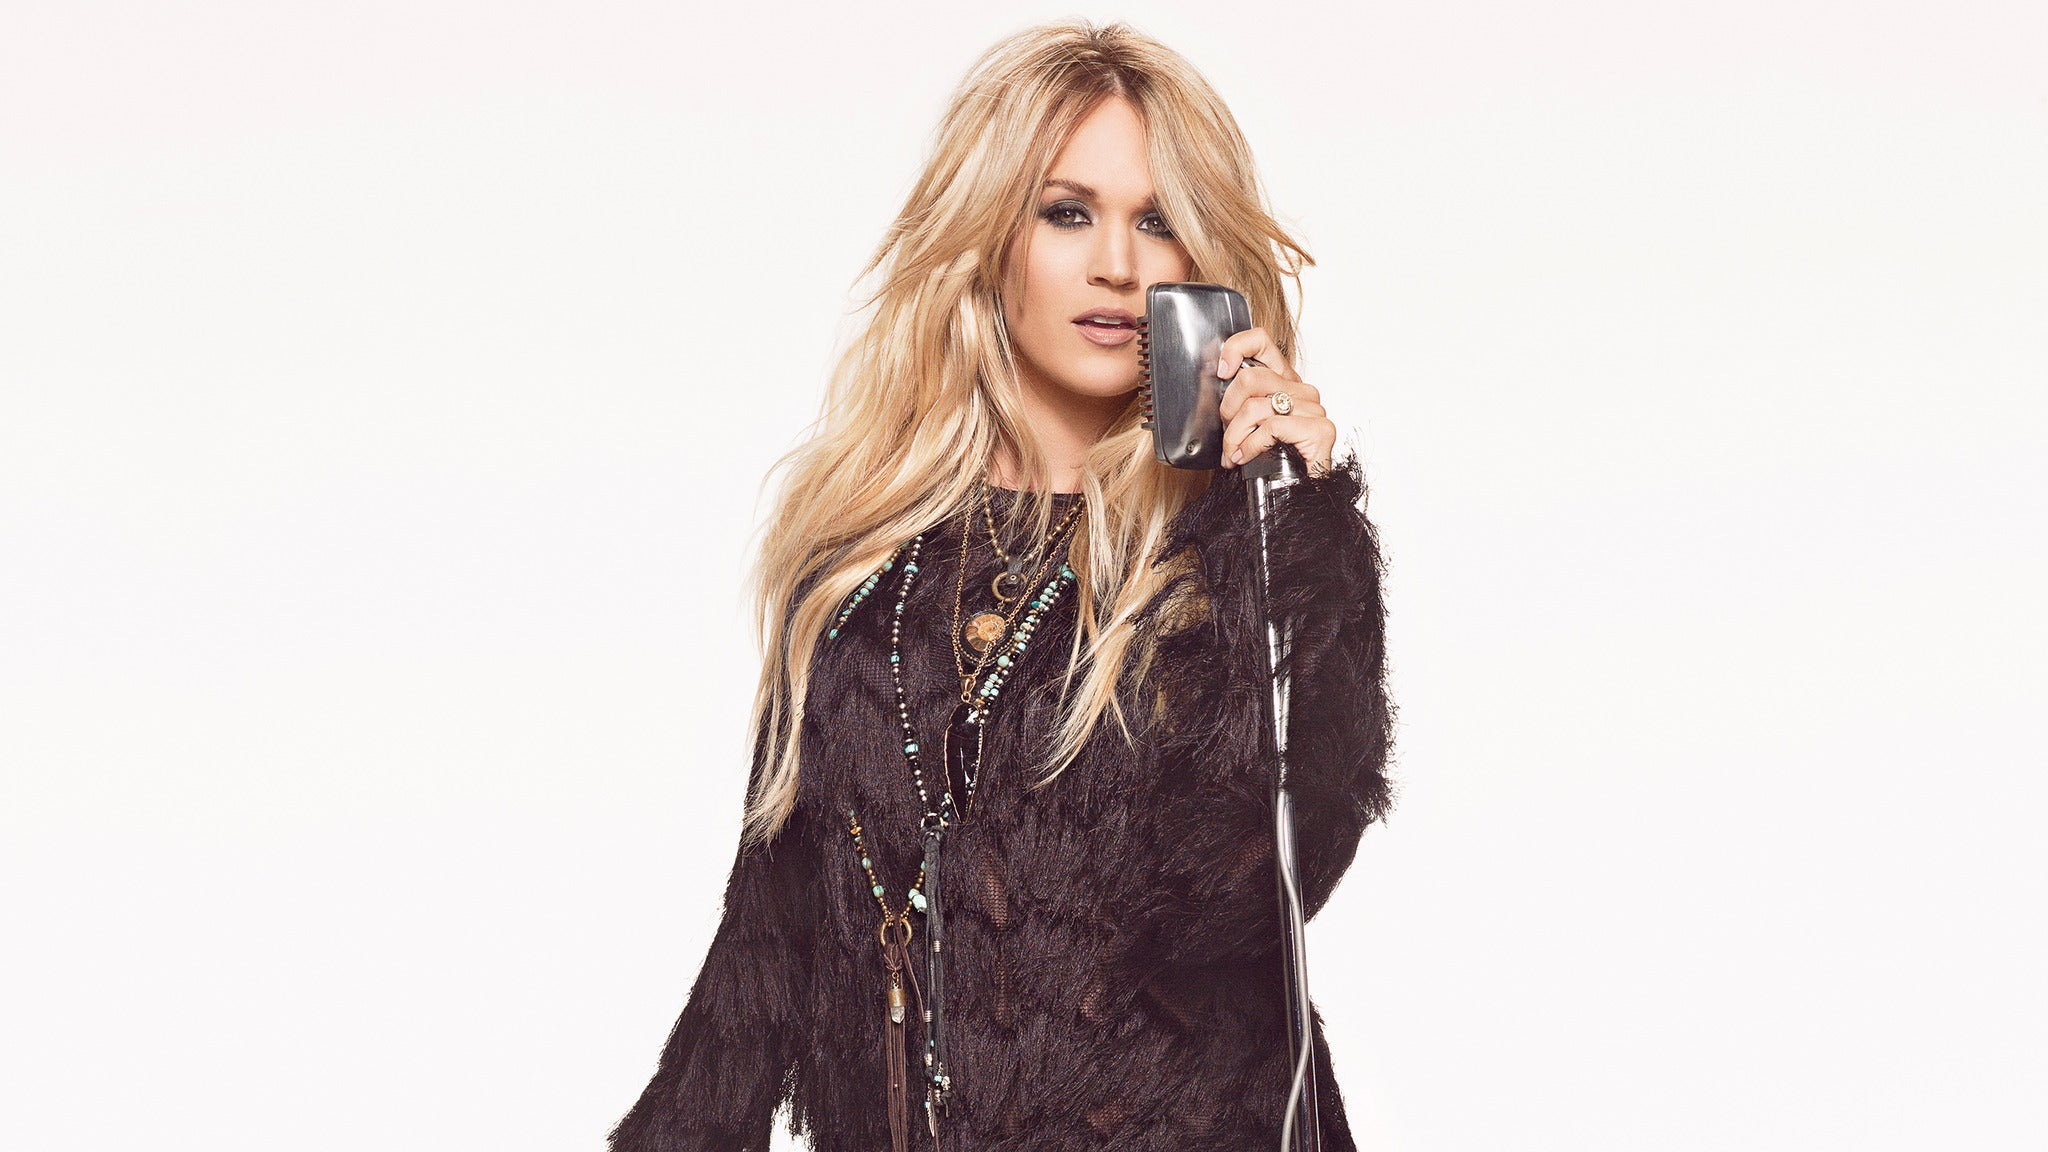 American Airlines and Mastercard present Carrie Underwood